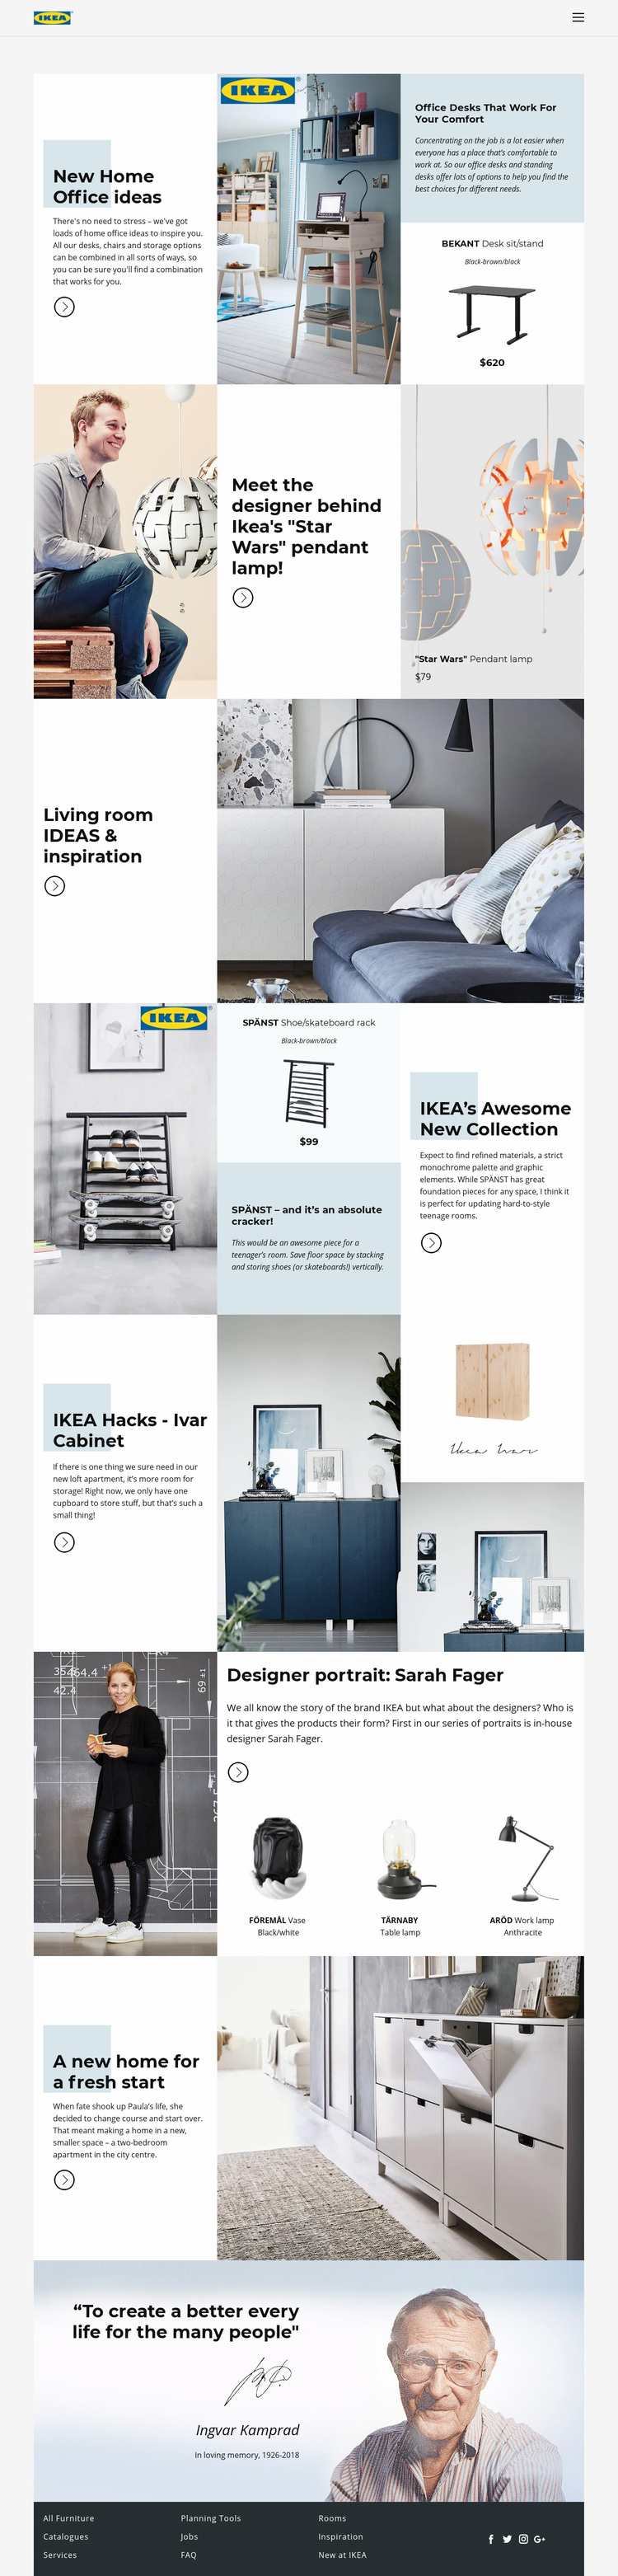 Inspiration from IKEA Web Page Designer